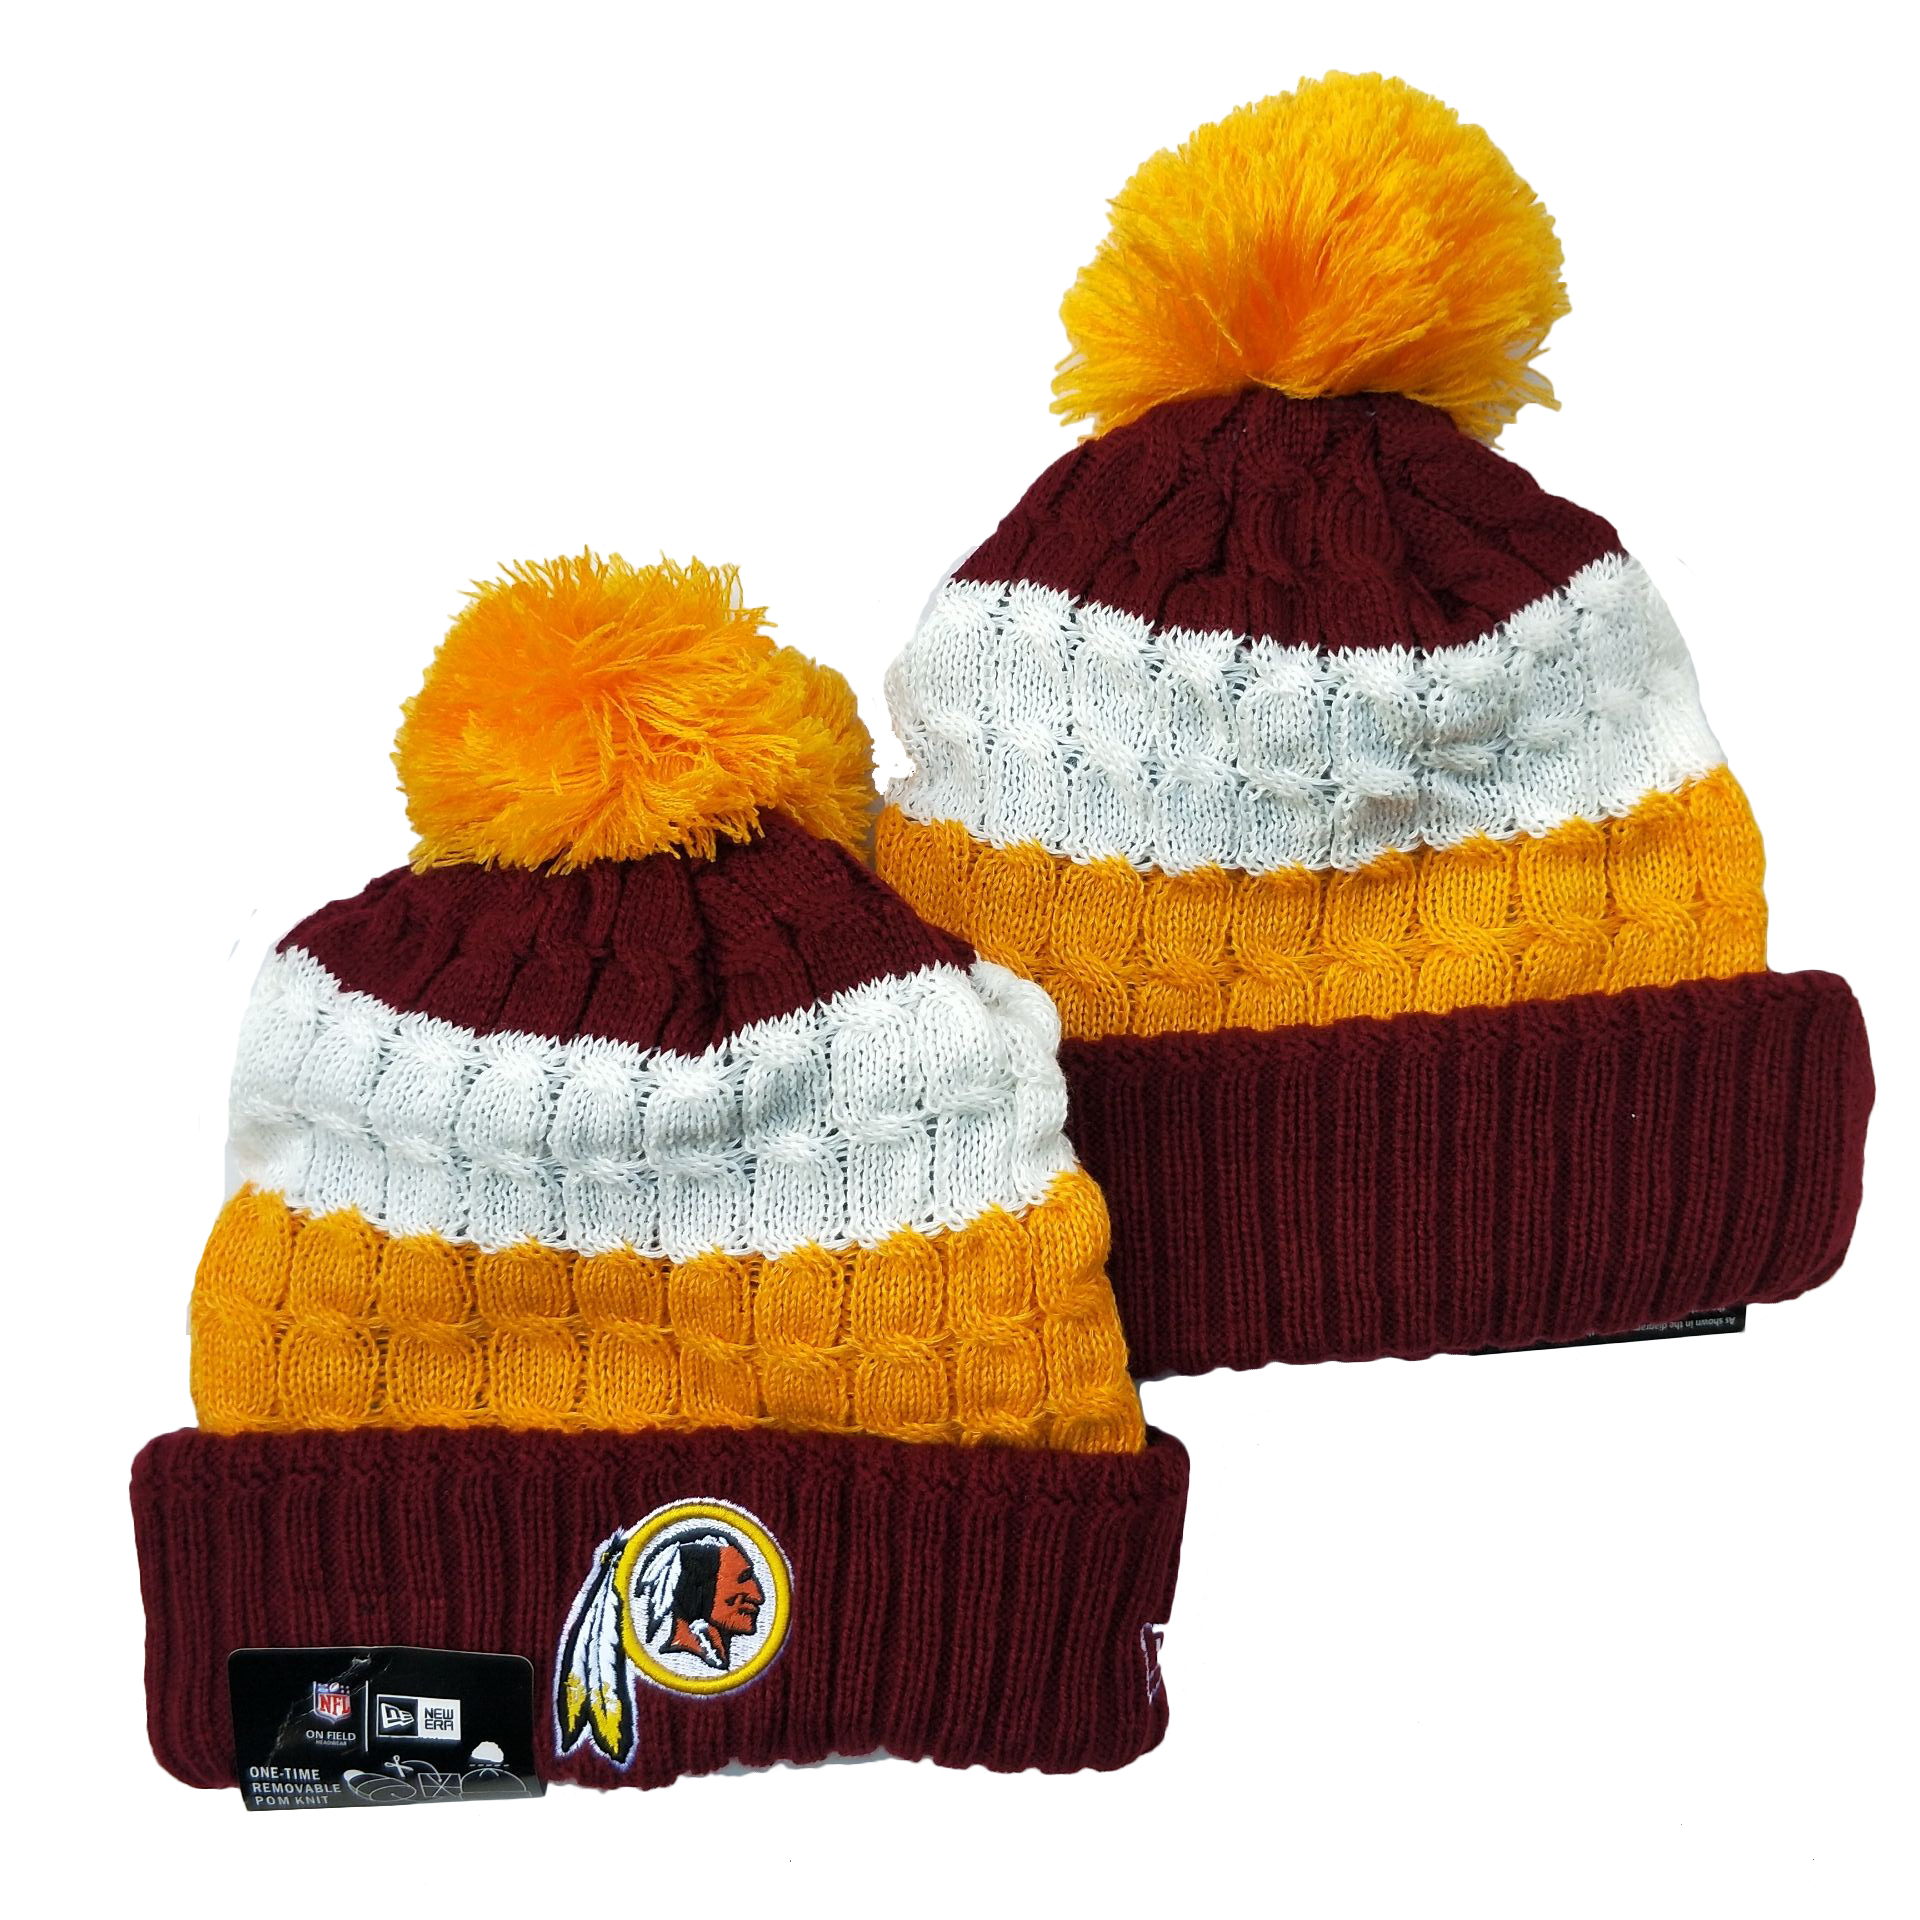 Washington Football Team Knit Hats 053